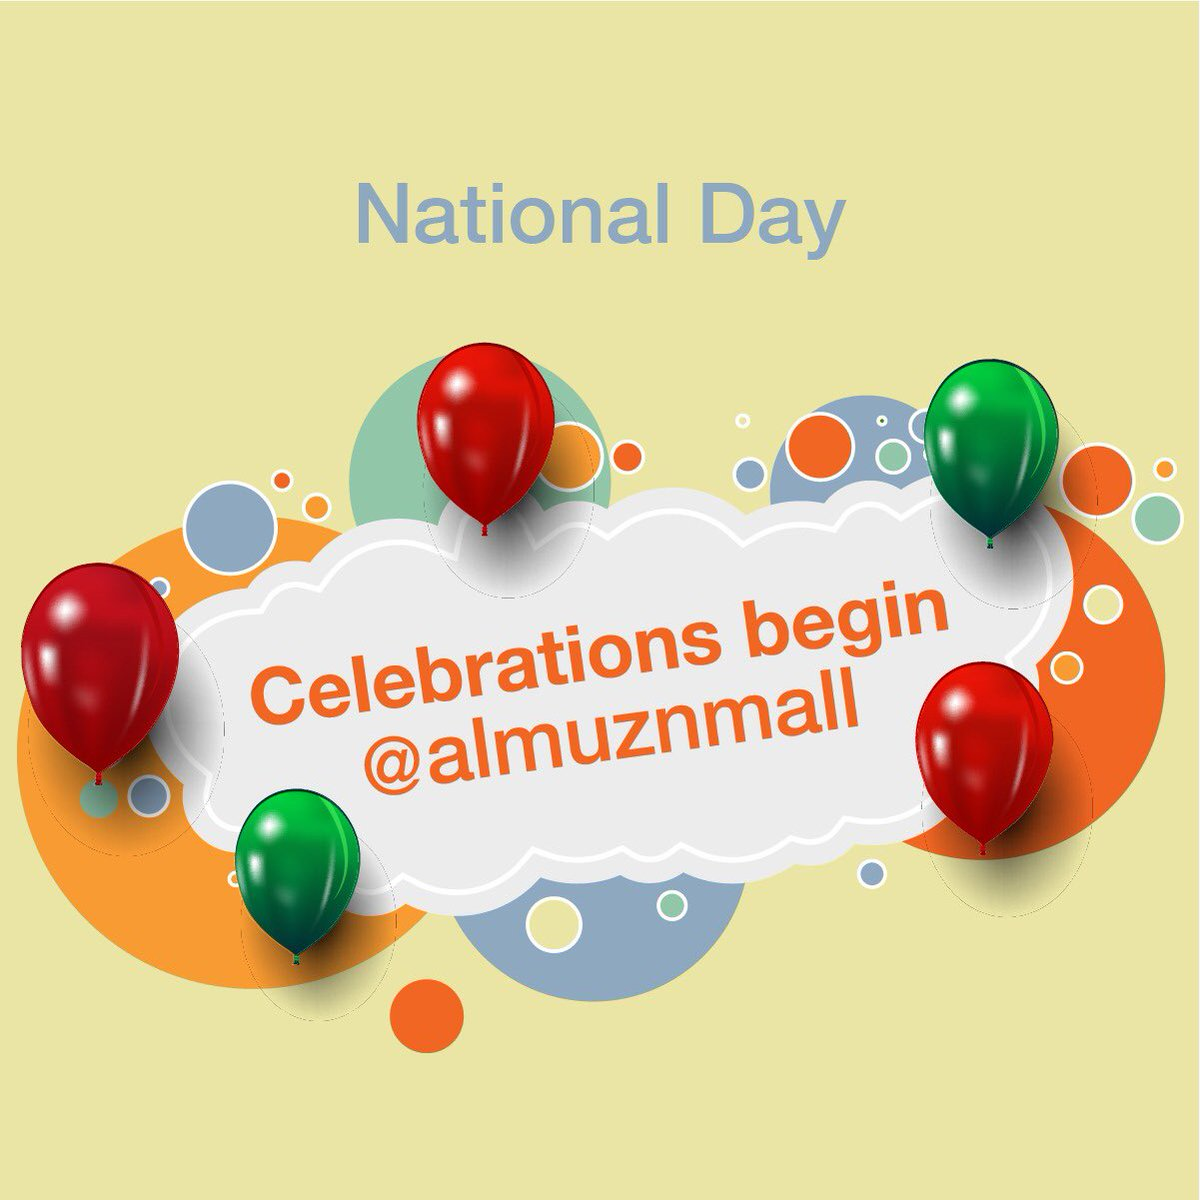 Come be a part of the Al Muzn Mall family and celebrate a fun-filled, thrilling 49th National Day! Be prepared for fantastic surprises, prizes and giveaways for you and your family!  #AlMuznMall  #shopping  #dining  #playarea  #mawaleh  #restaurants  #coffeeshop  #desserts   #nationalday